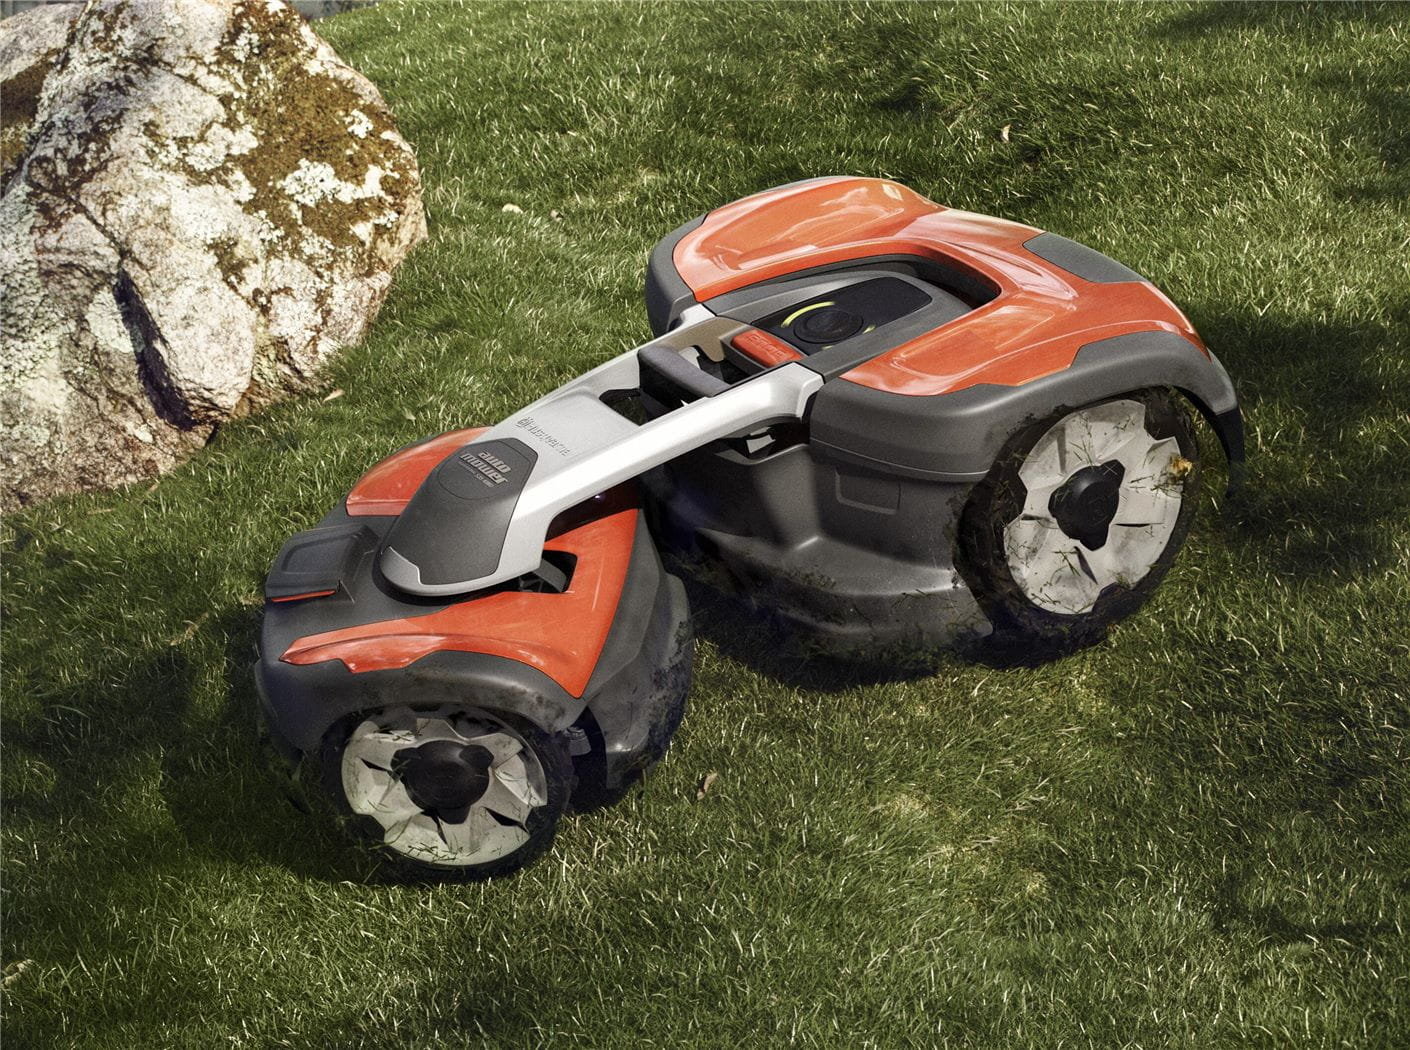 Automower 535 AWD - small square format